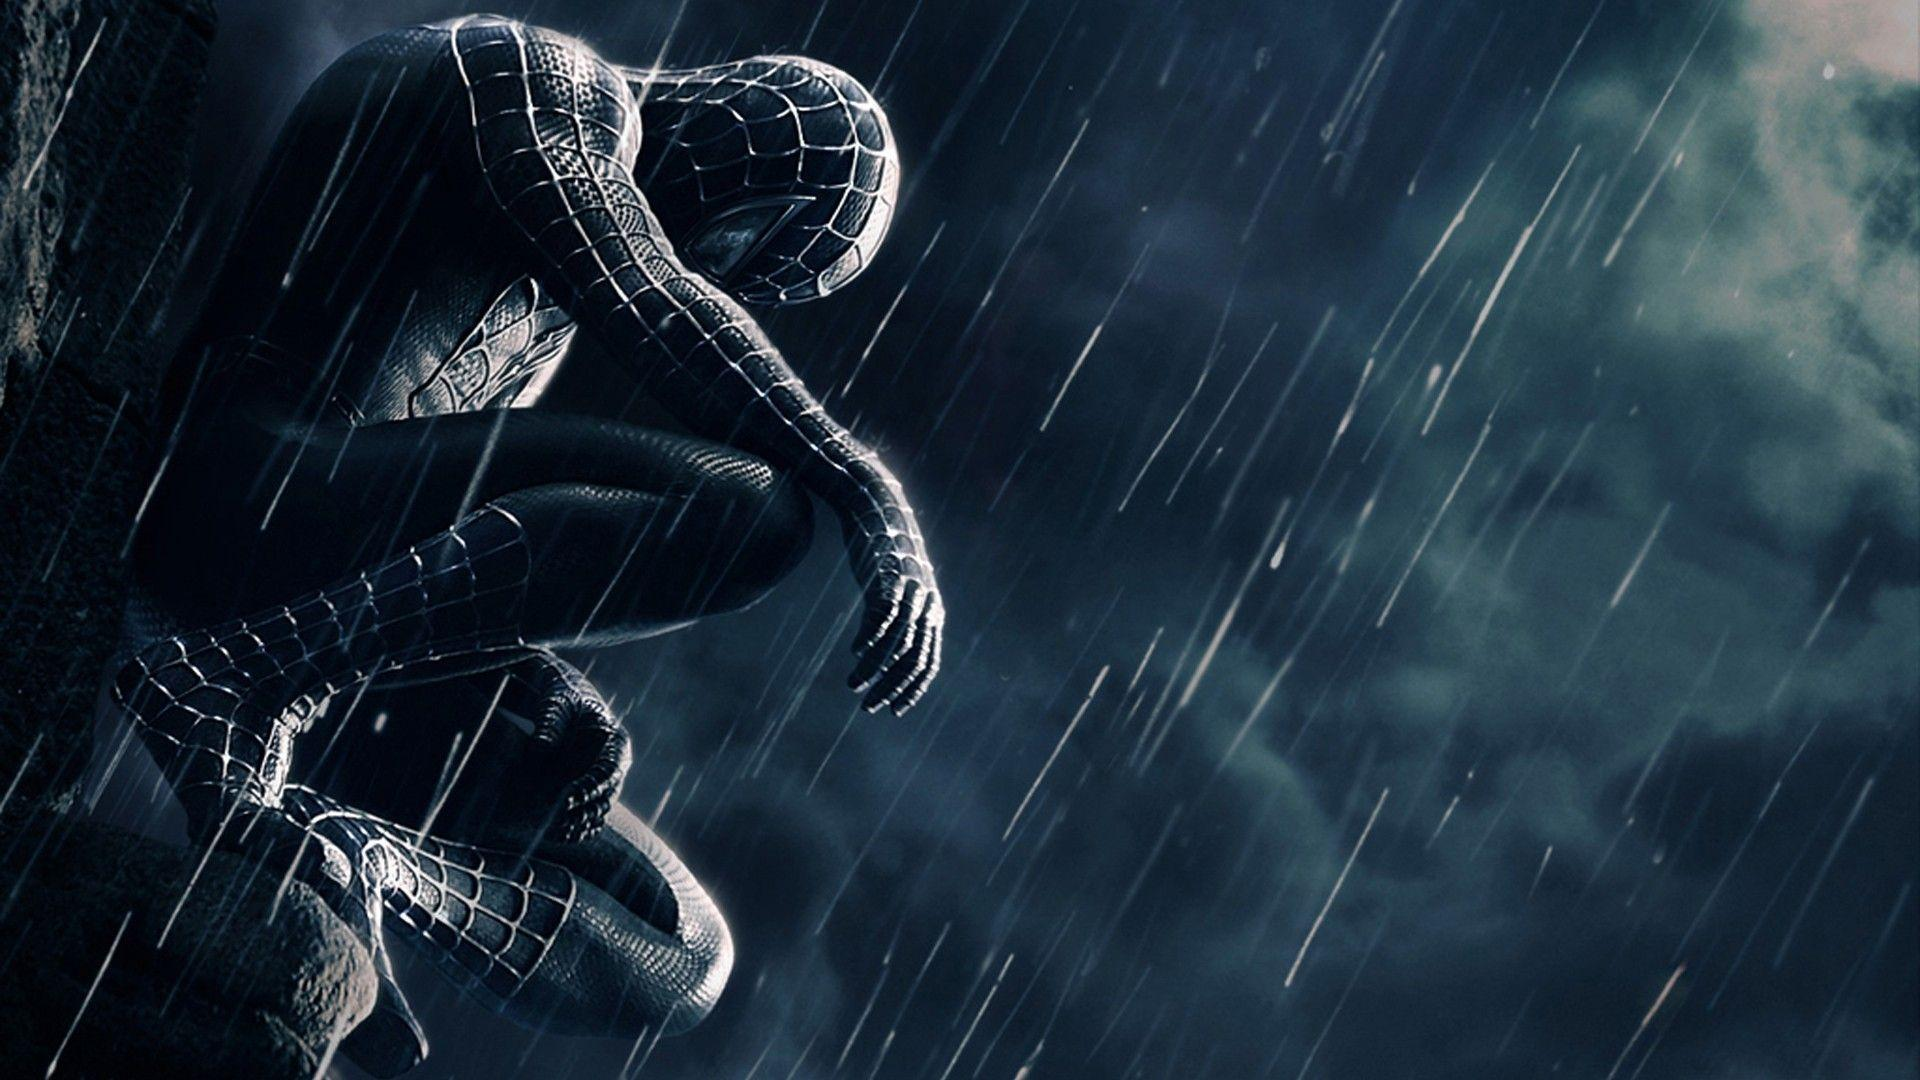 spiderman 3 wallpapers wallpaper cave